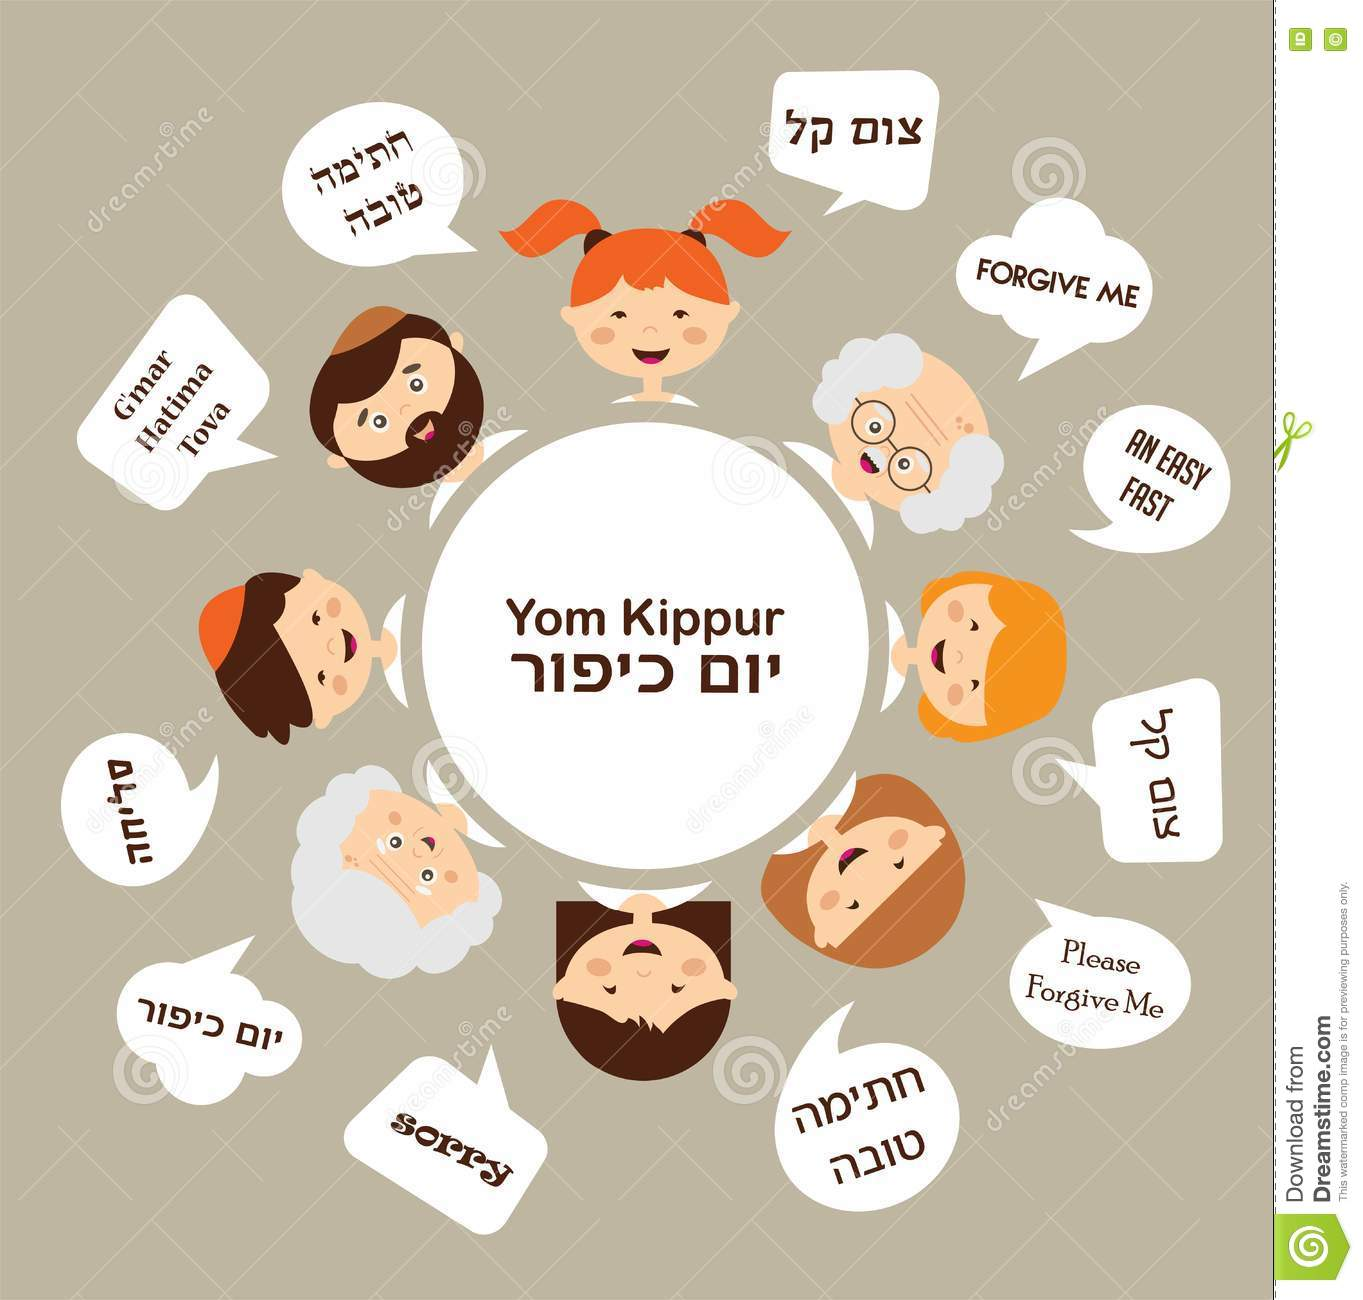 Proper greeting for yom kippur images greetings card design simple appropriate greeting for yom kippur images greetings card design m4hsunfo